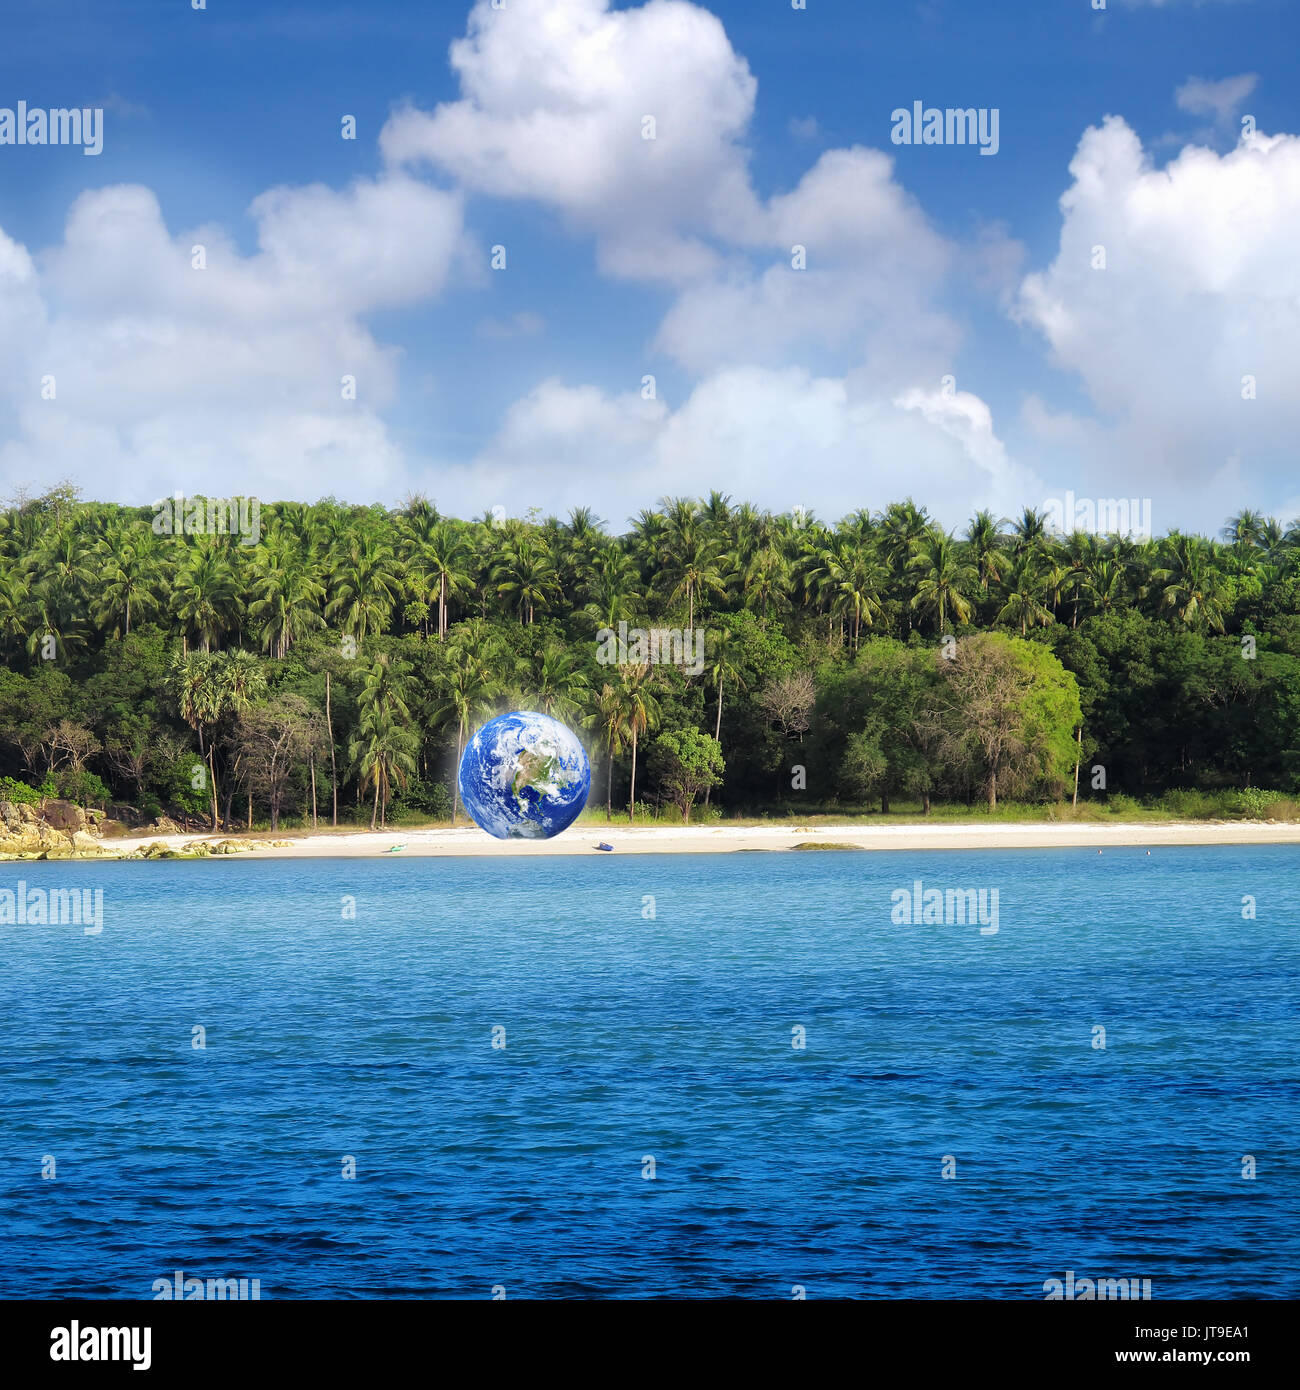 Conceptual image of world on green island nasa world map image conceptual image of world on green island nasa world map image layered and used nasa httpsflickrphotosgsfcsets7215763217210 gumiabroncs Images